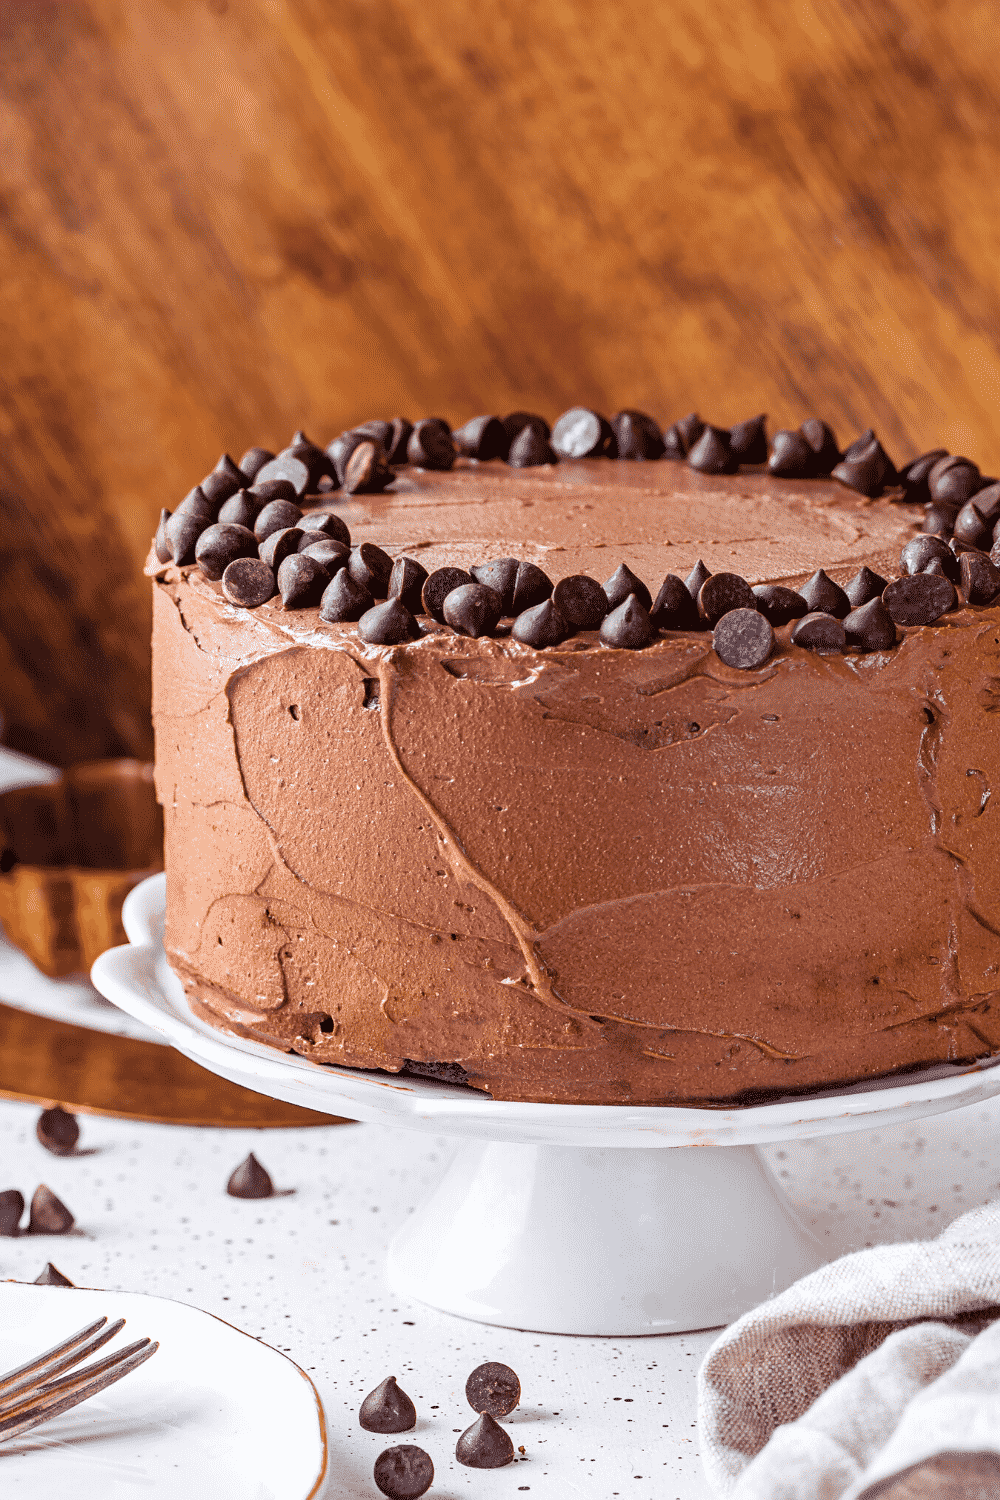 A whole chocolate cake on a white serving dish.